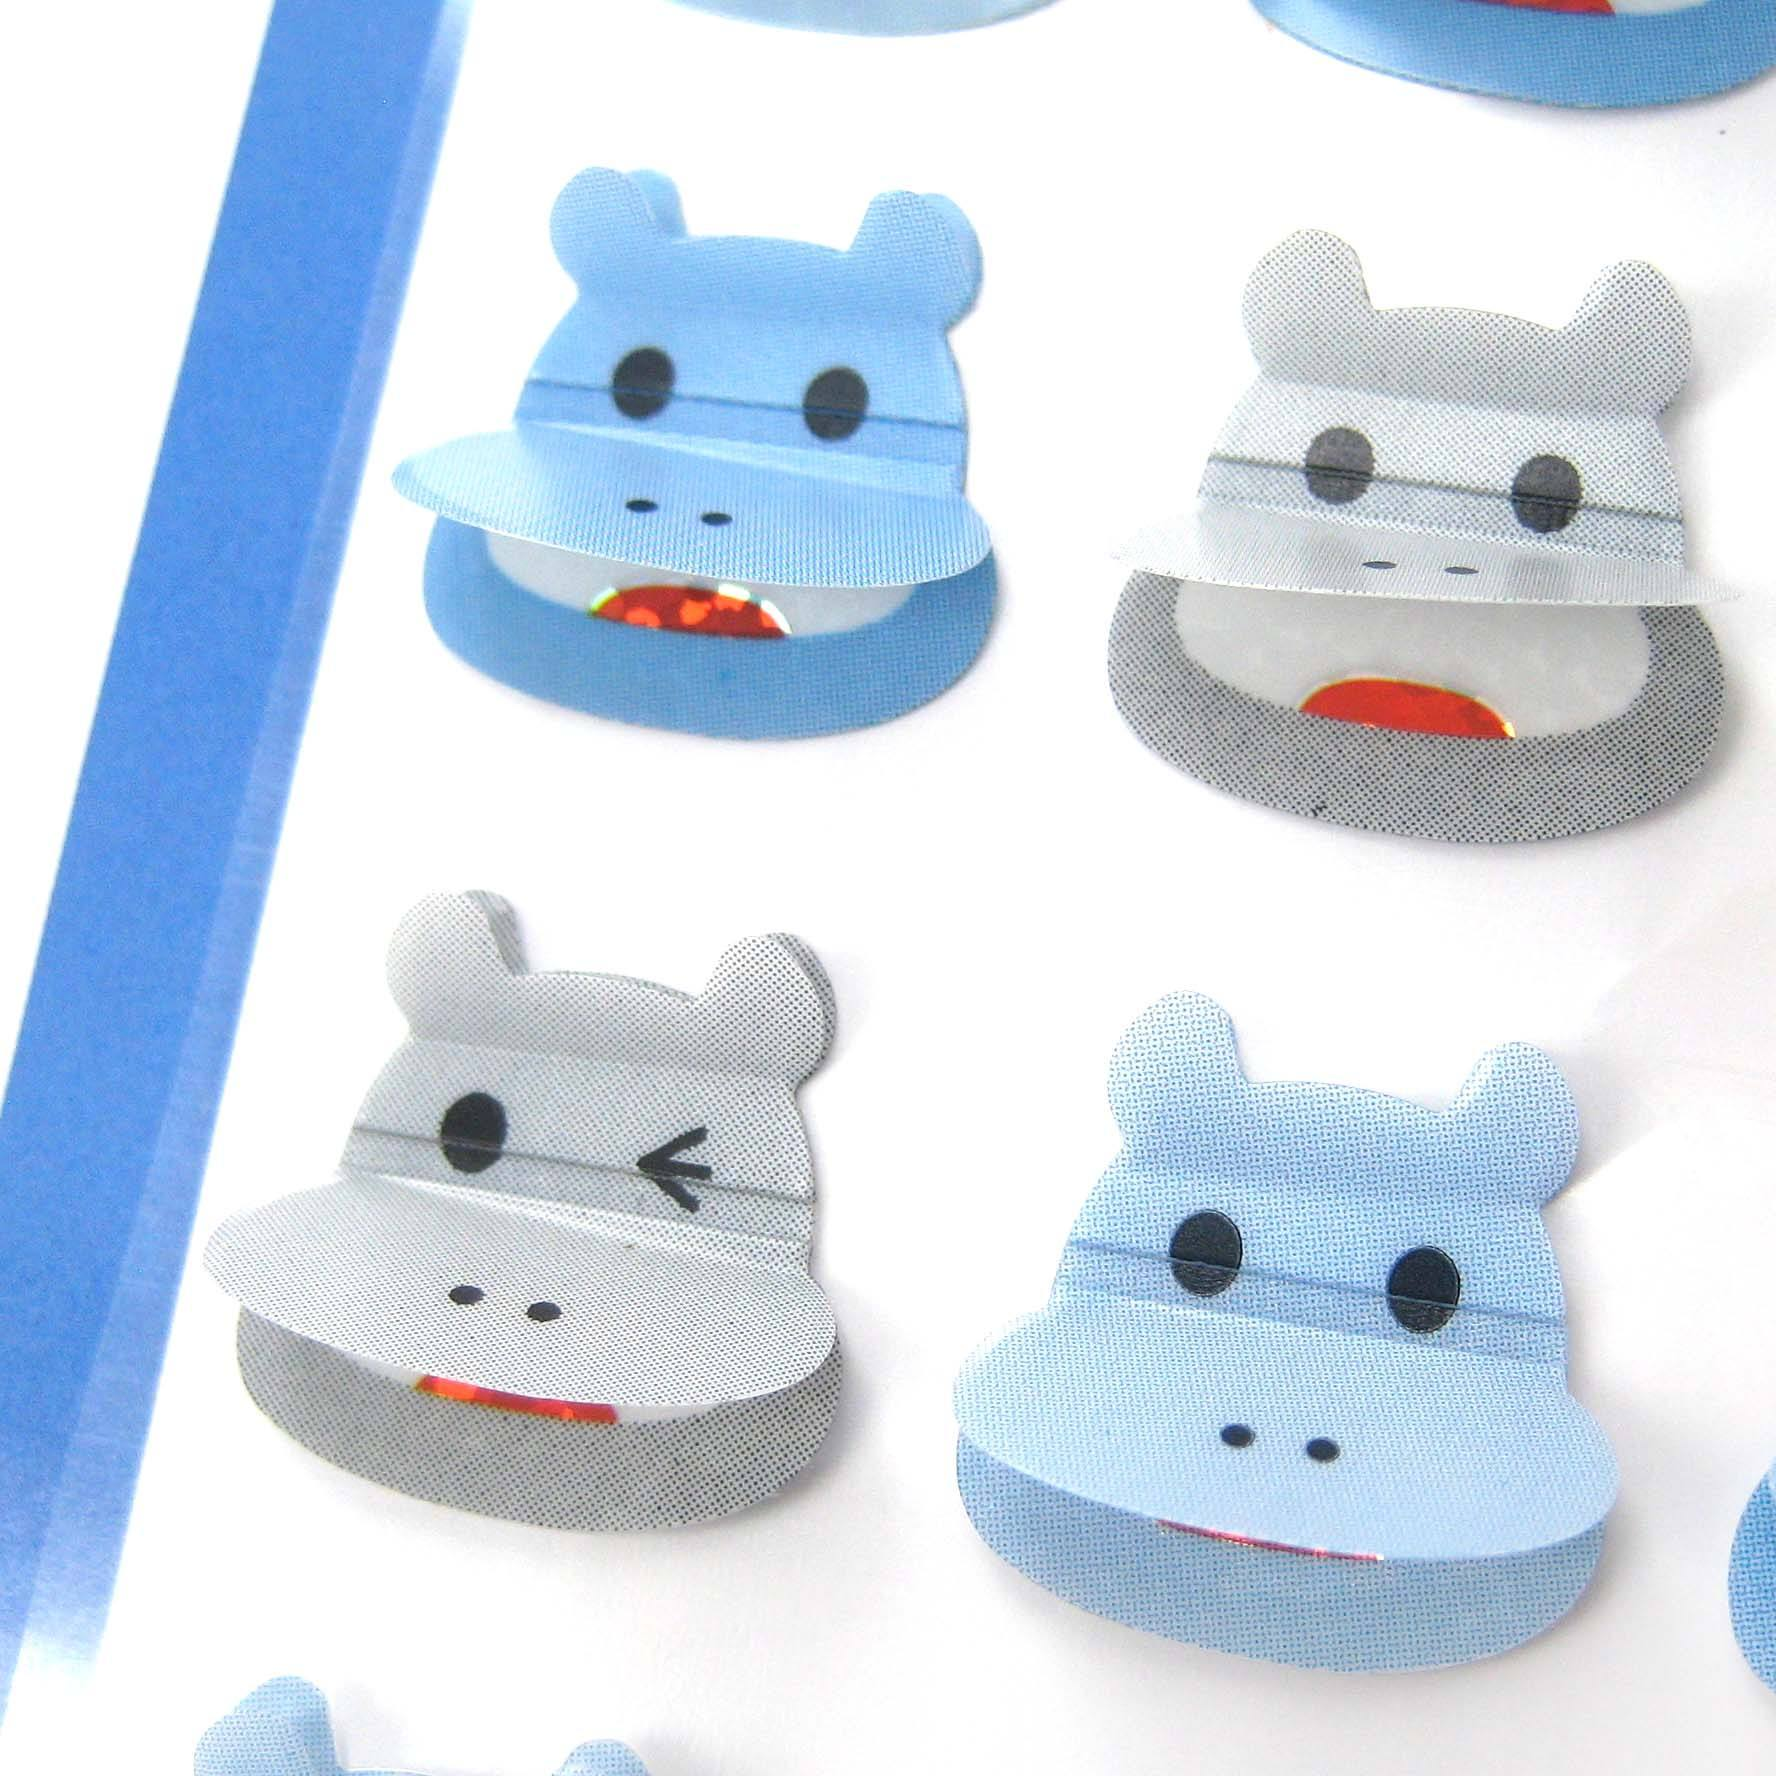 hippopotamus-hippo-shaped-3d-pop-up-stickers-for-scrapbooking-and-decorating